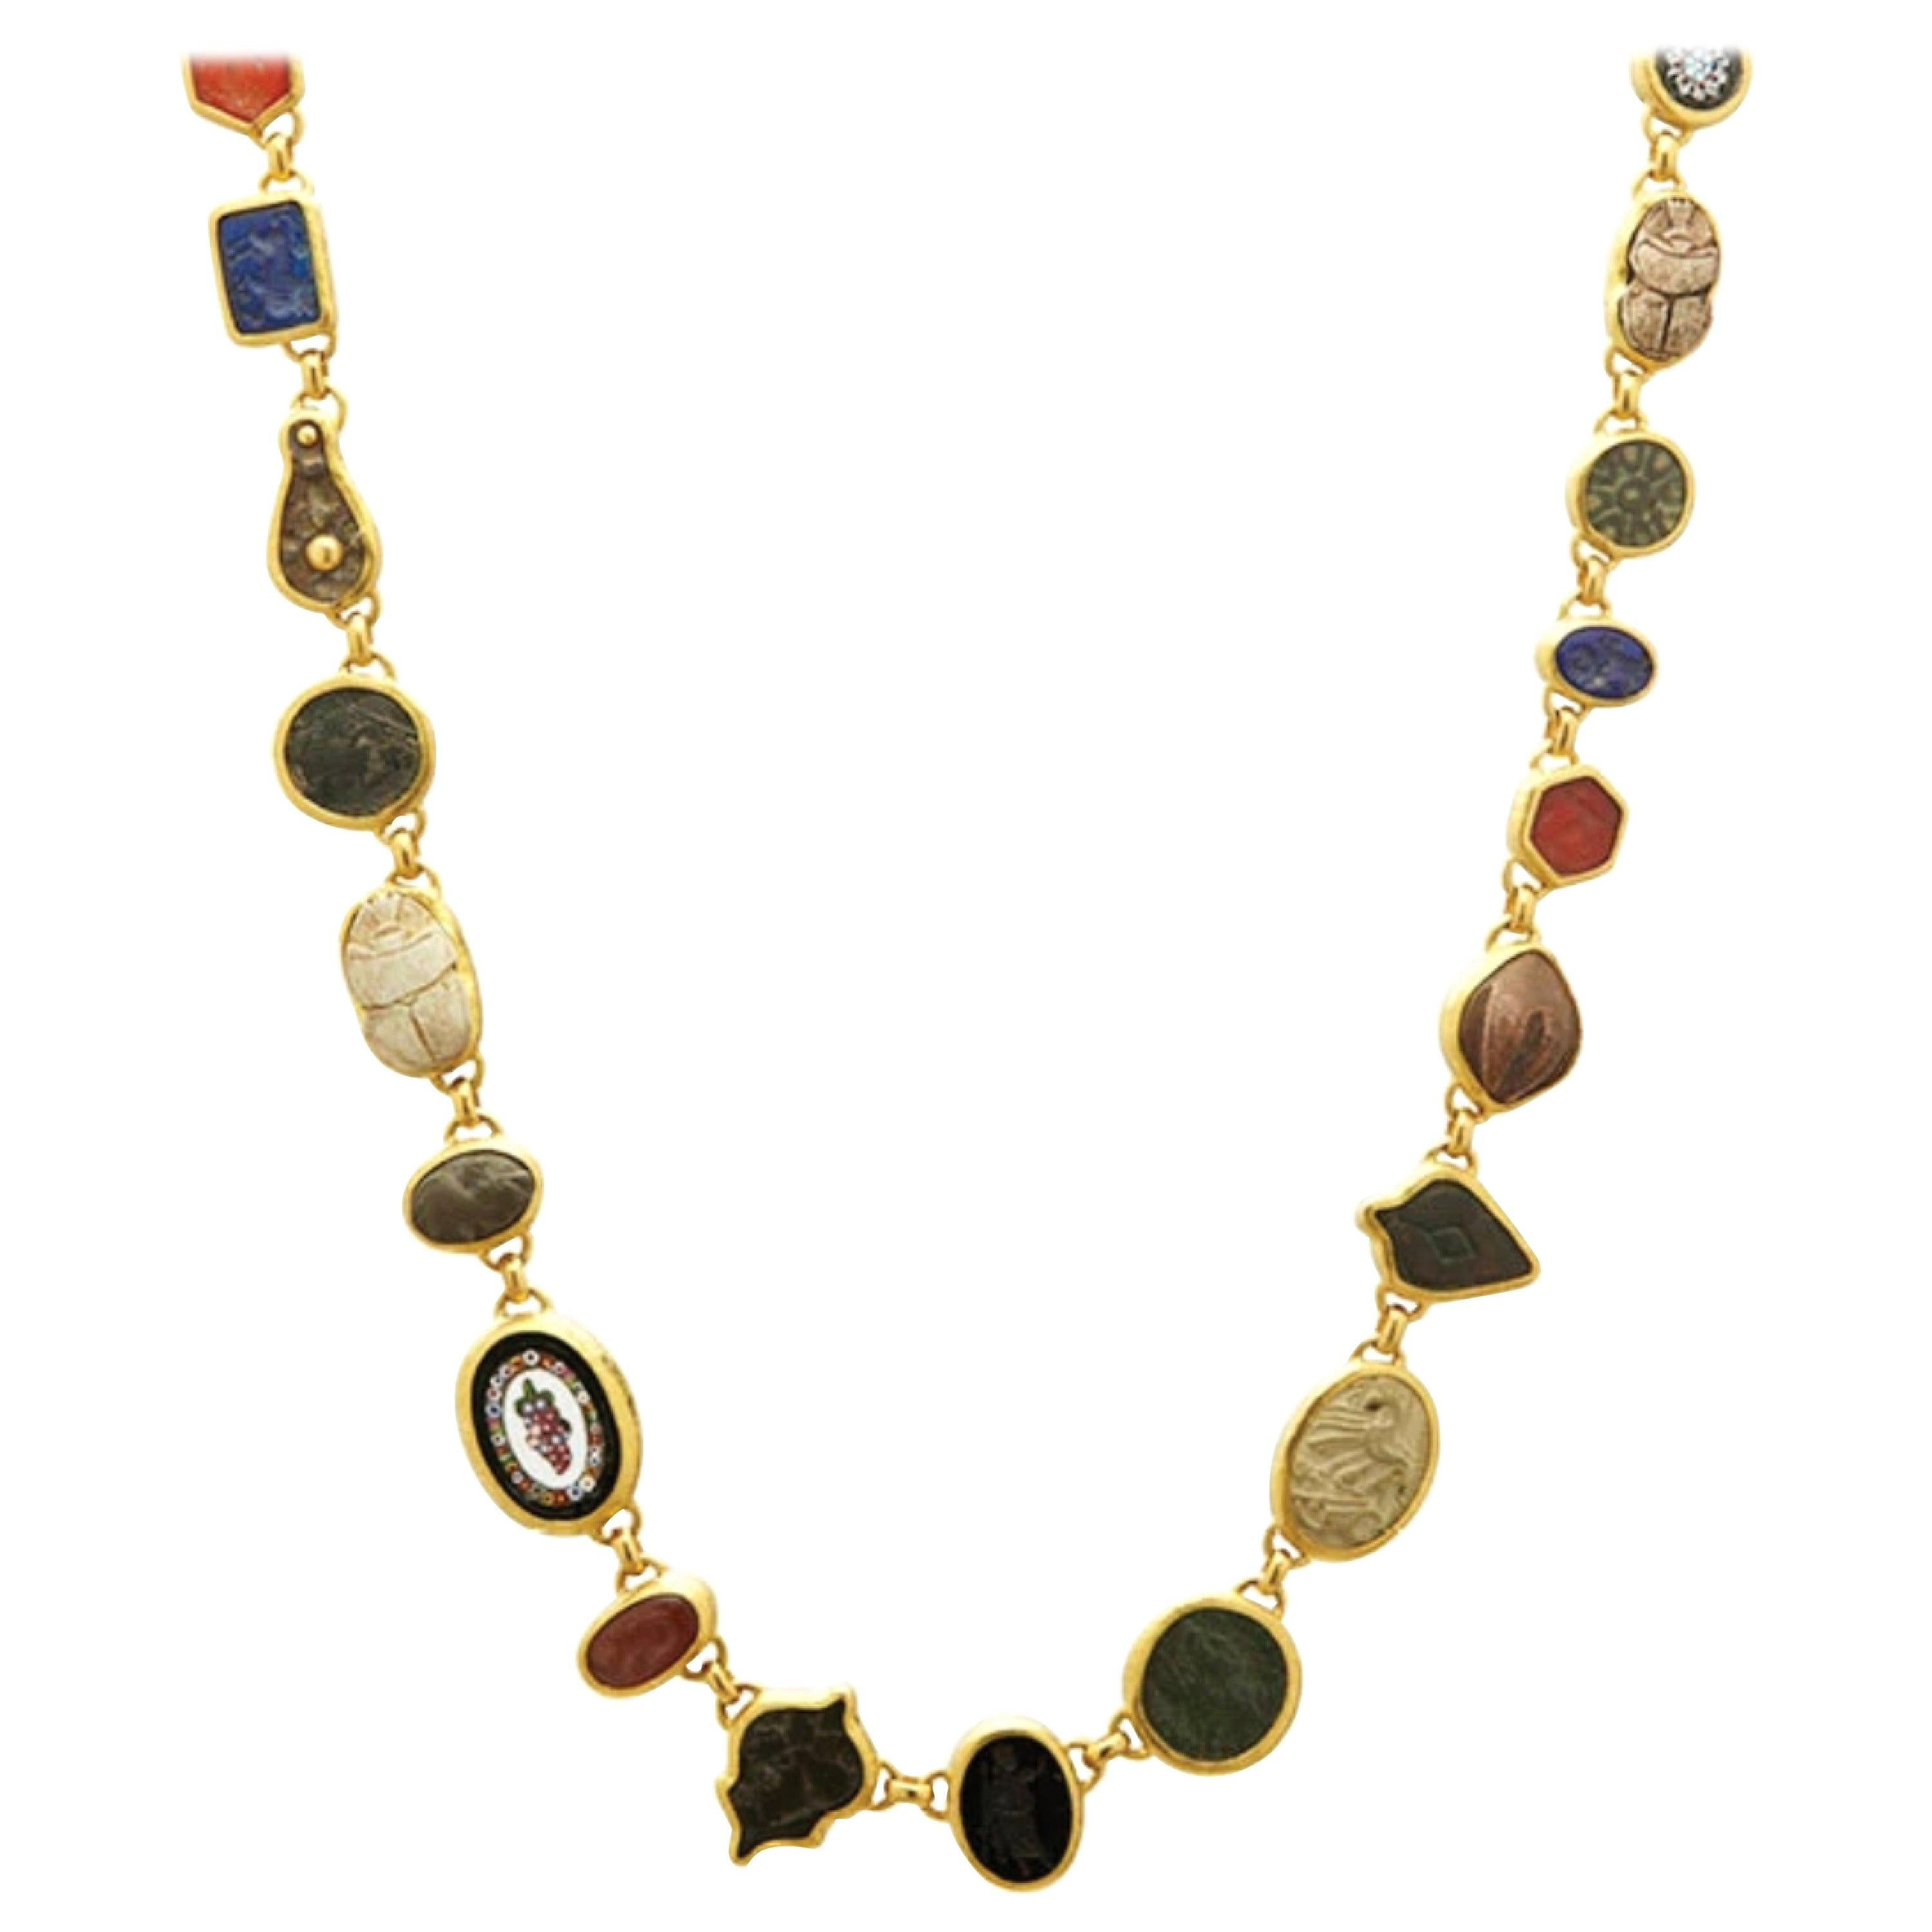 Gurhan One of a Kind Antiquities Necklace in 24 Karat Yellow Gold